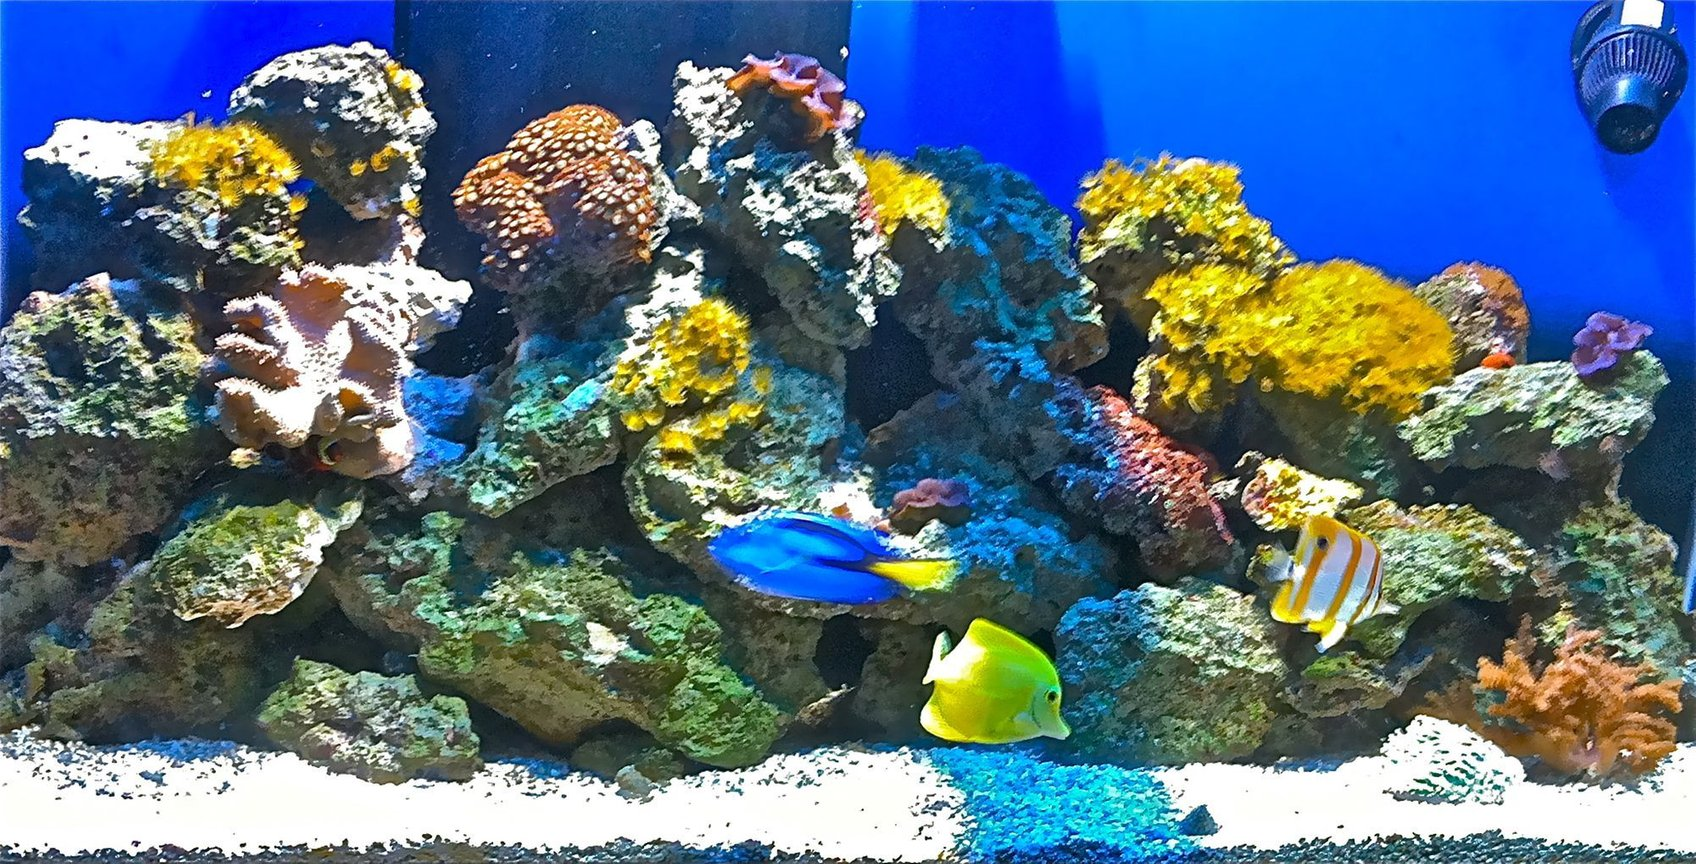 110 gallons reef tank (mostly live coral and fish) - Tank with Leather Toadstool, Many different types of corals. Blue Regal, Yellow Tang, Copperband, and Clownfish.